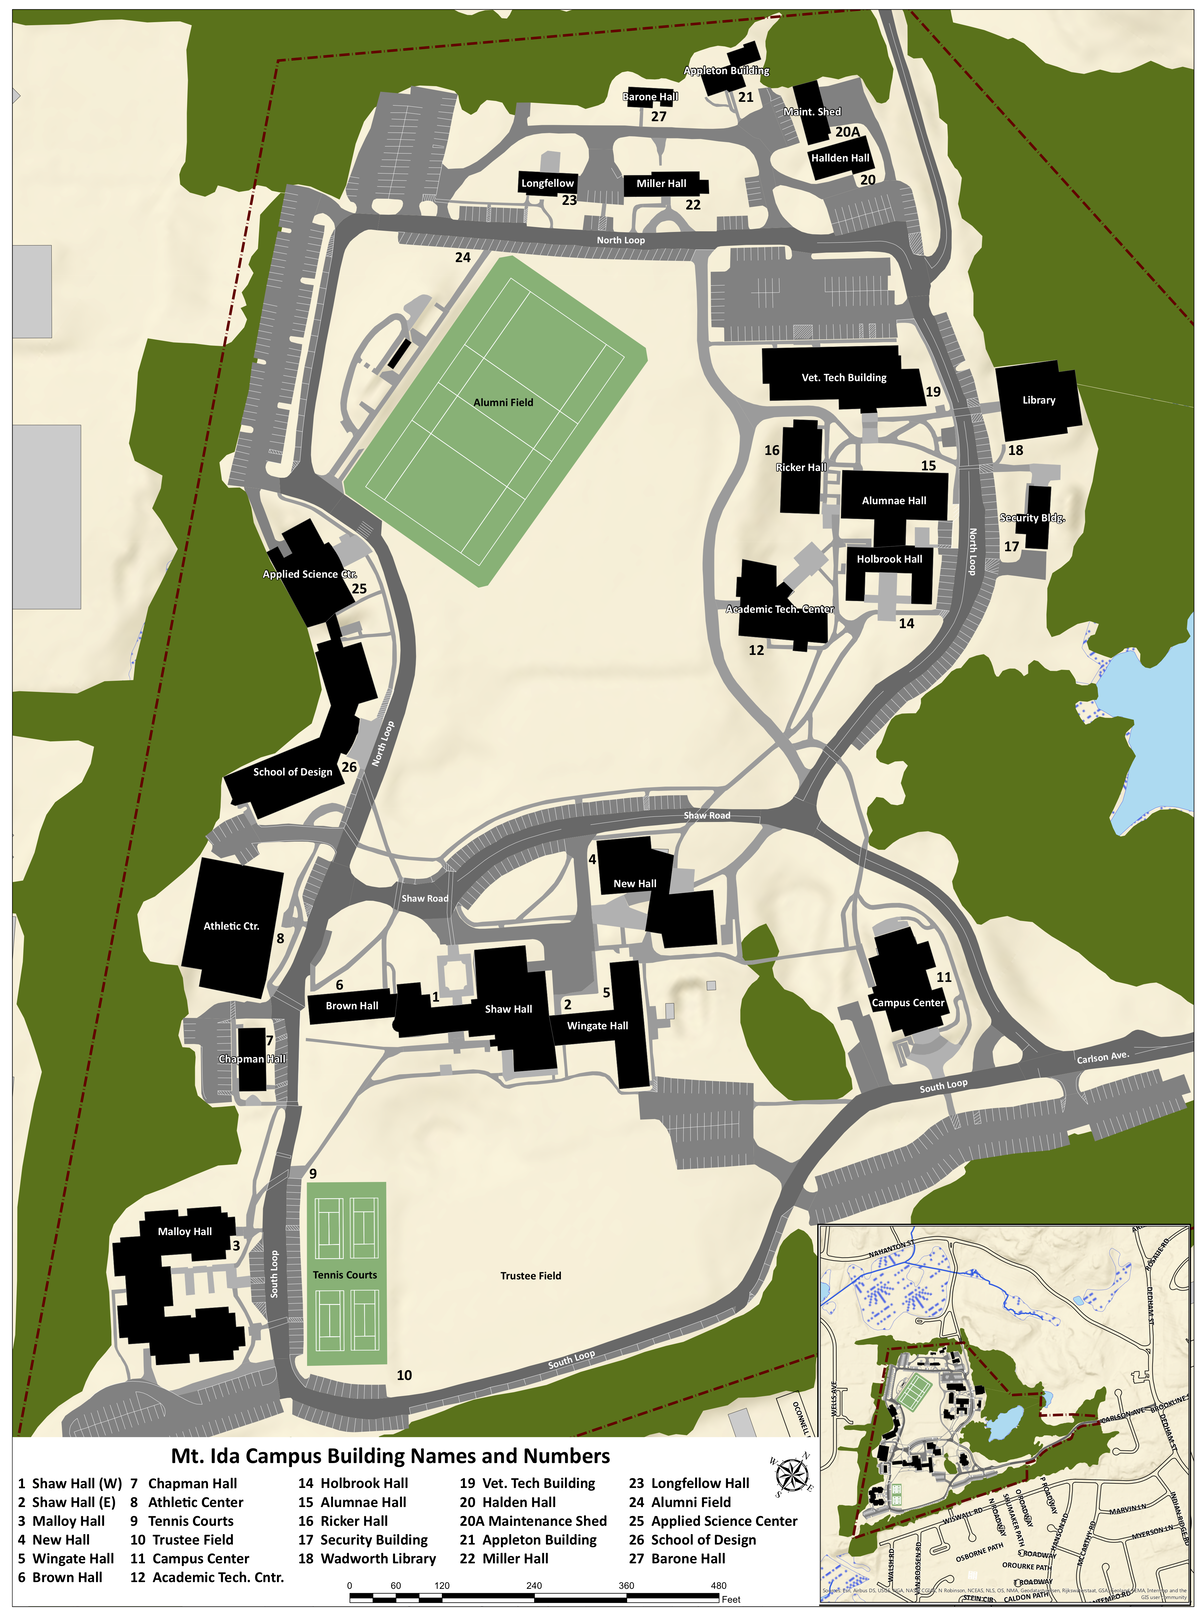 Campus Map | Mount Ida Campus on design a scroll, design a grid, design a marionette, design a marketing plan, design a engagement ring, design a comb, design a web, design a sandbox, design a bulletin board, design a directory, design a chalkboard, design a tent, design a coupon, design a list, design a case study, design a community, design a tipi, design a document, design a painting, design a handout,